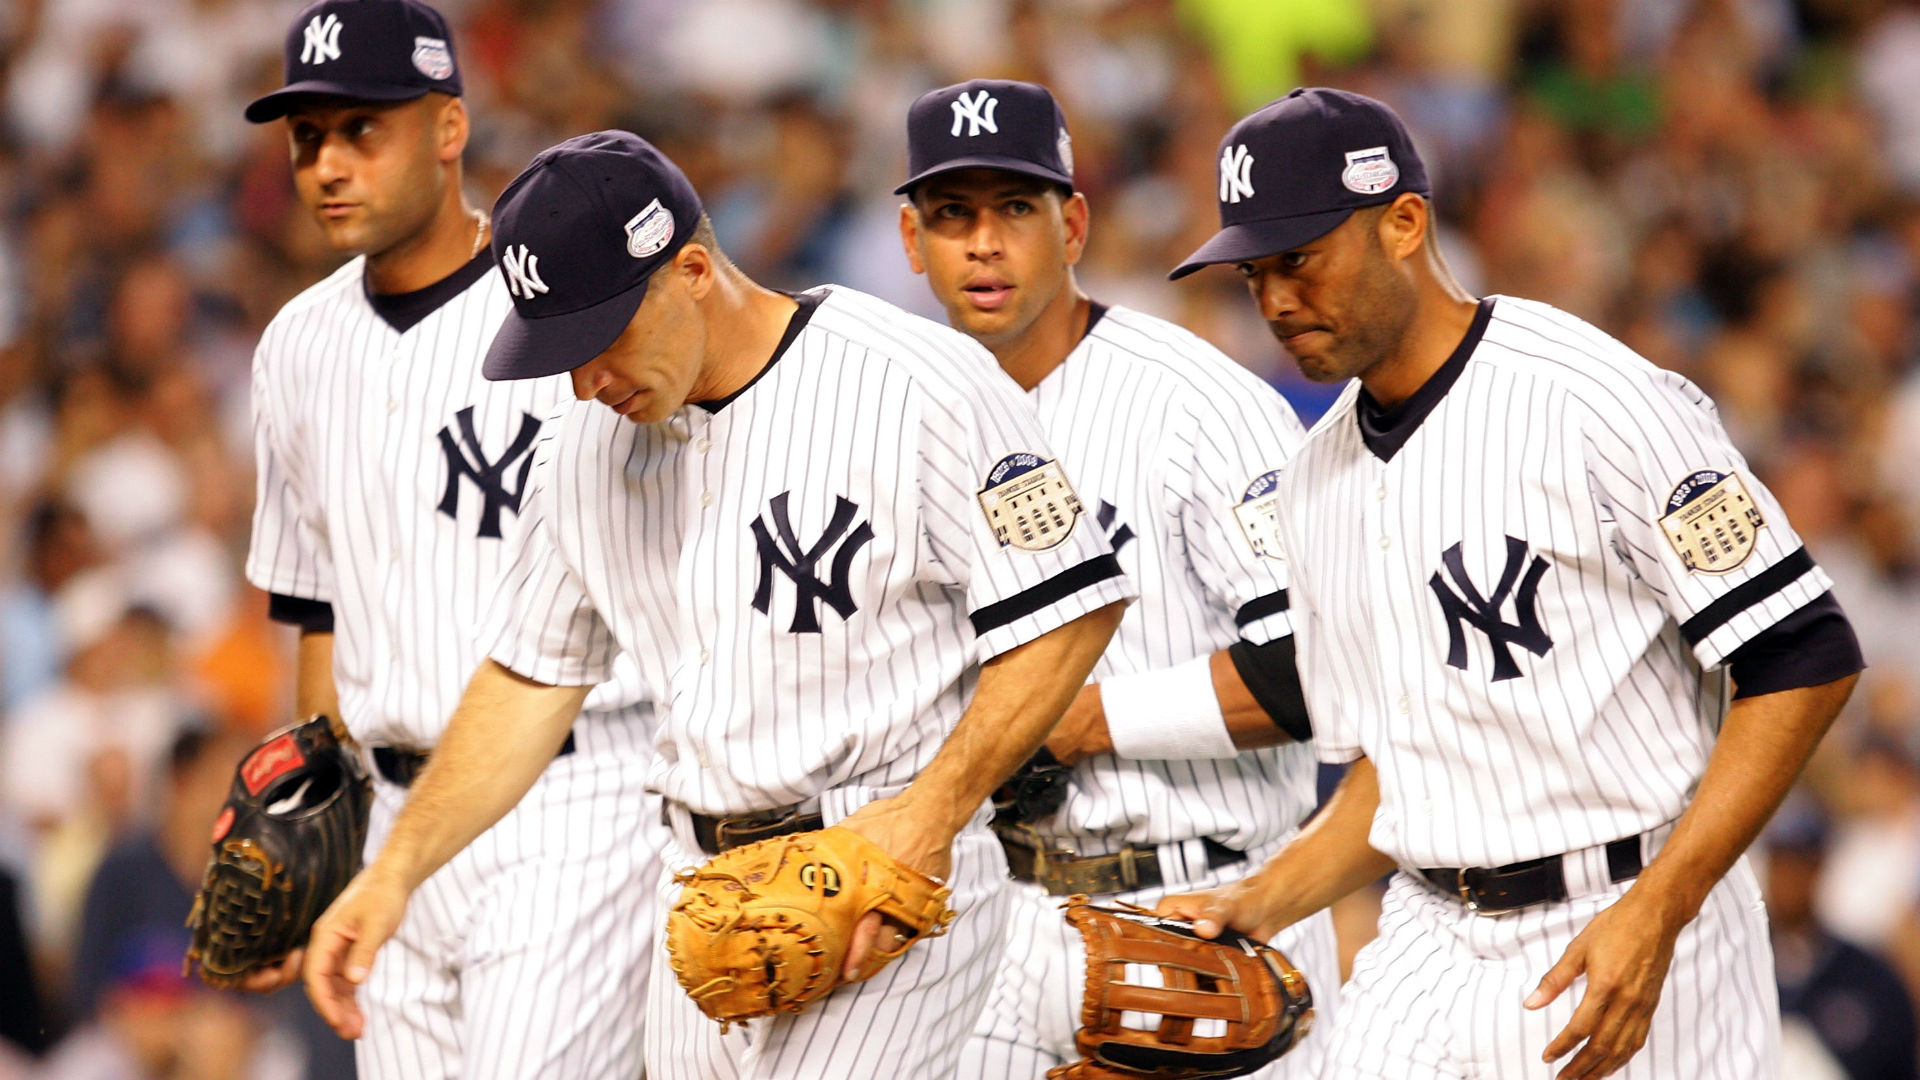 Yankees Greats React To Alex Rodriguezs Final Game In Pinstripes